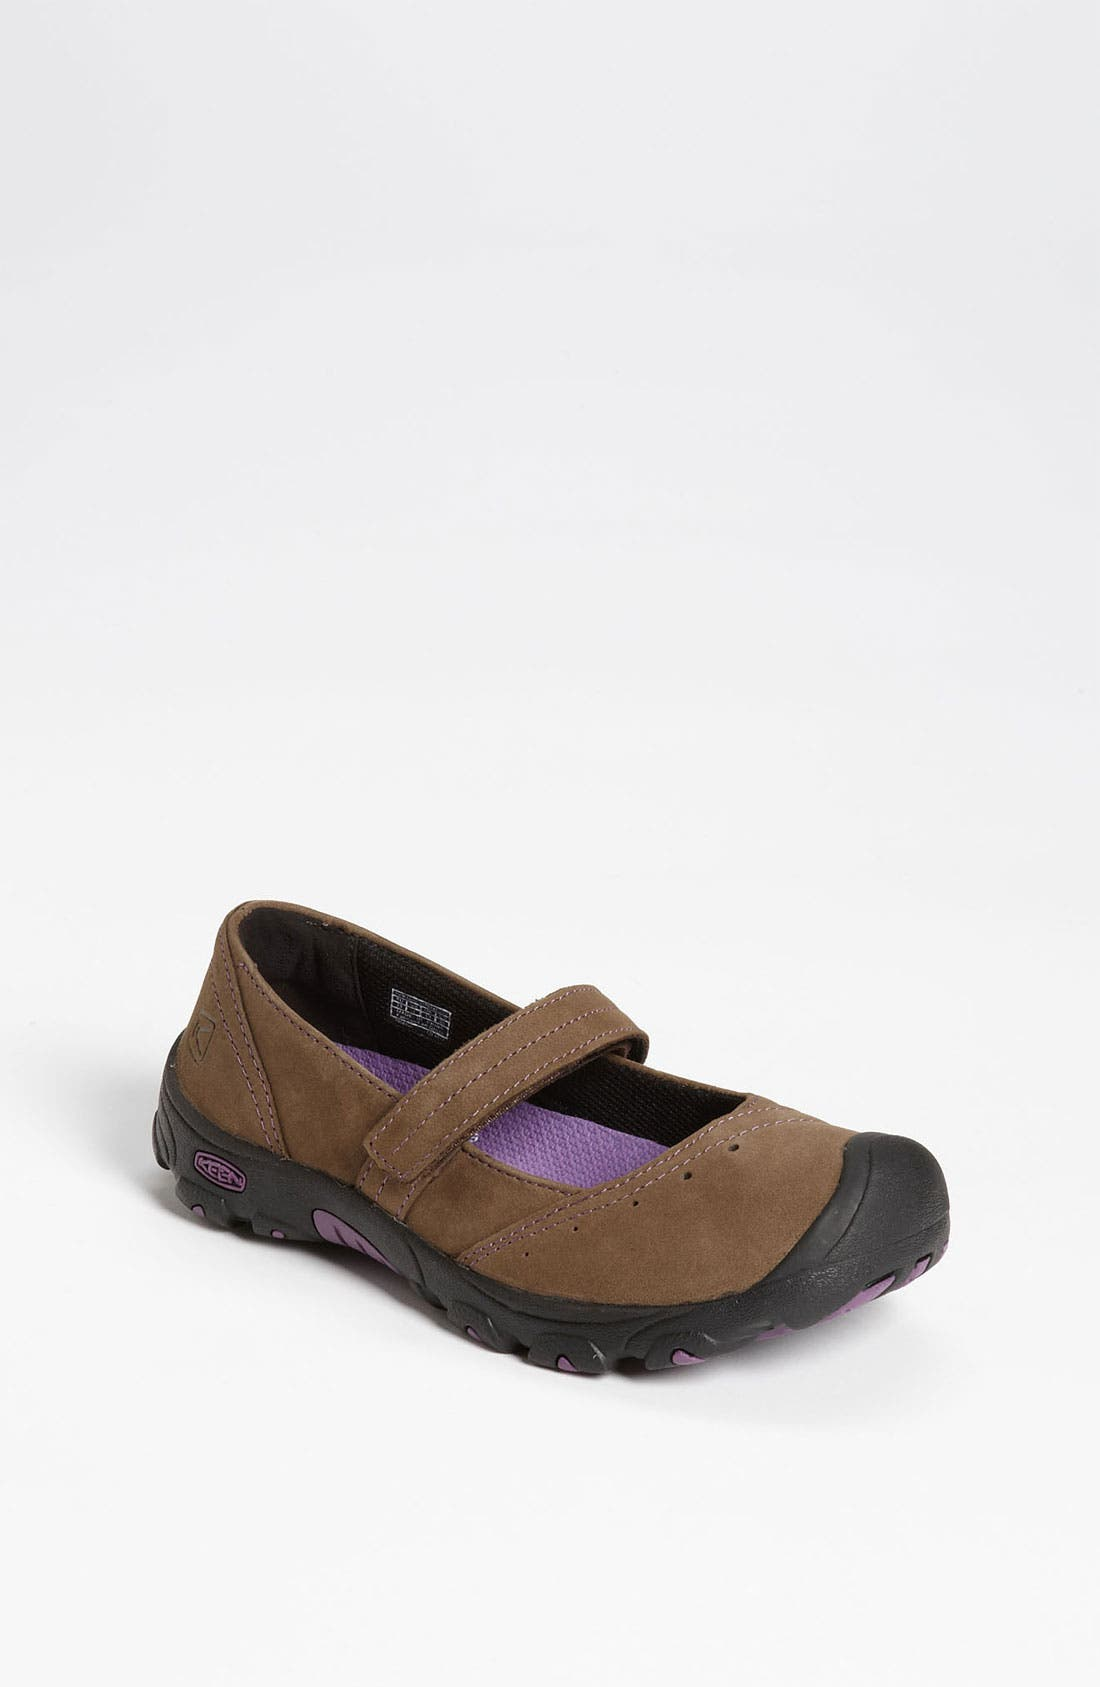 Alternate Image 1 Selected - Keen 'Libby' Slip-On (Walker, Toddler, Little Kid & Big Kid)